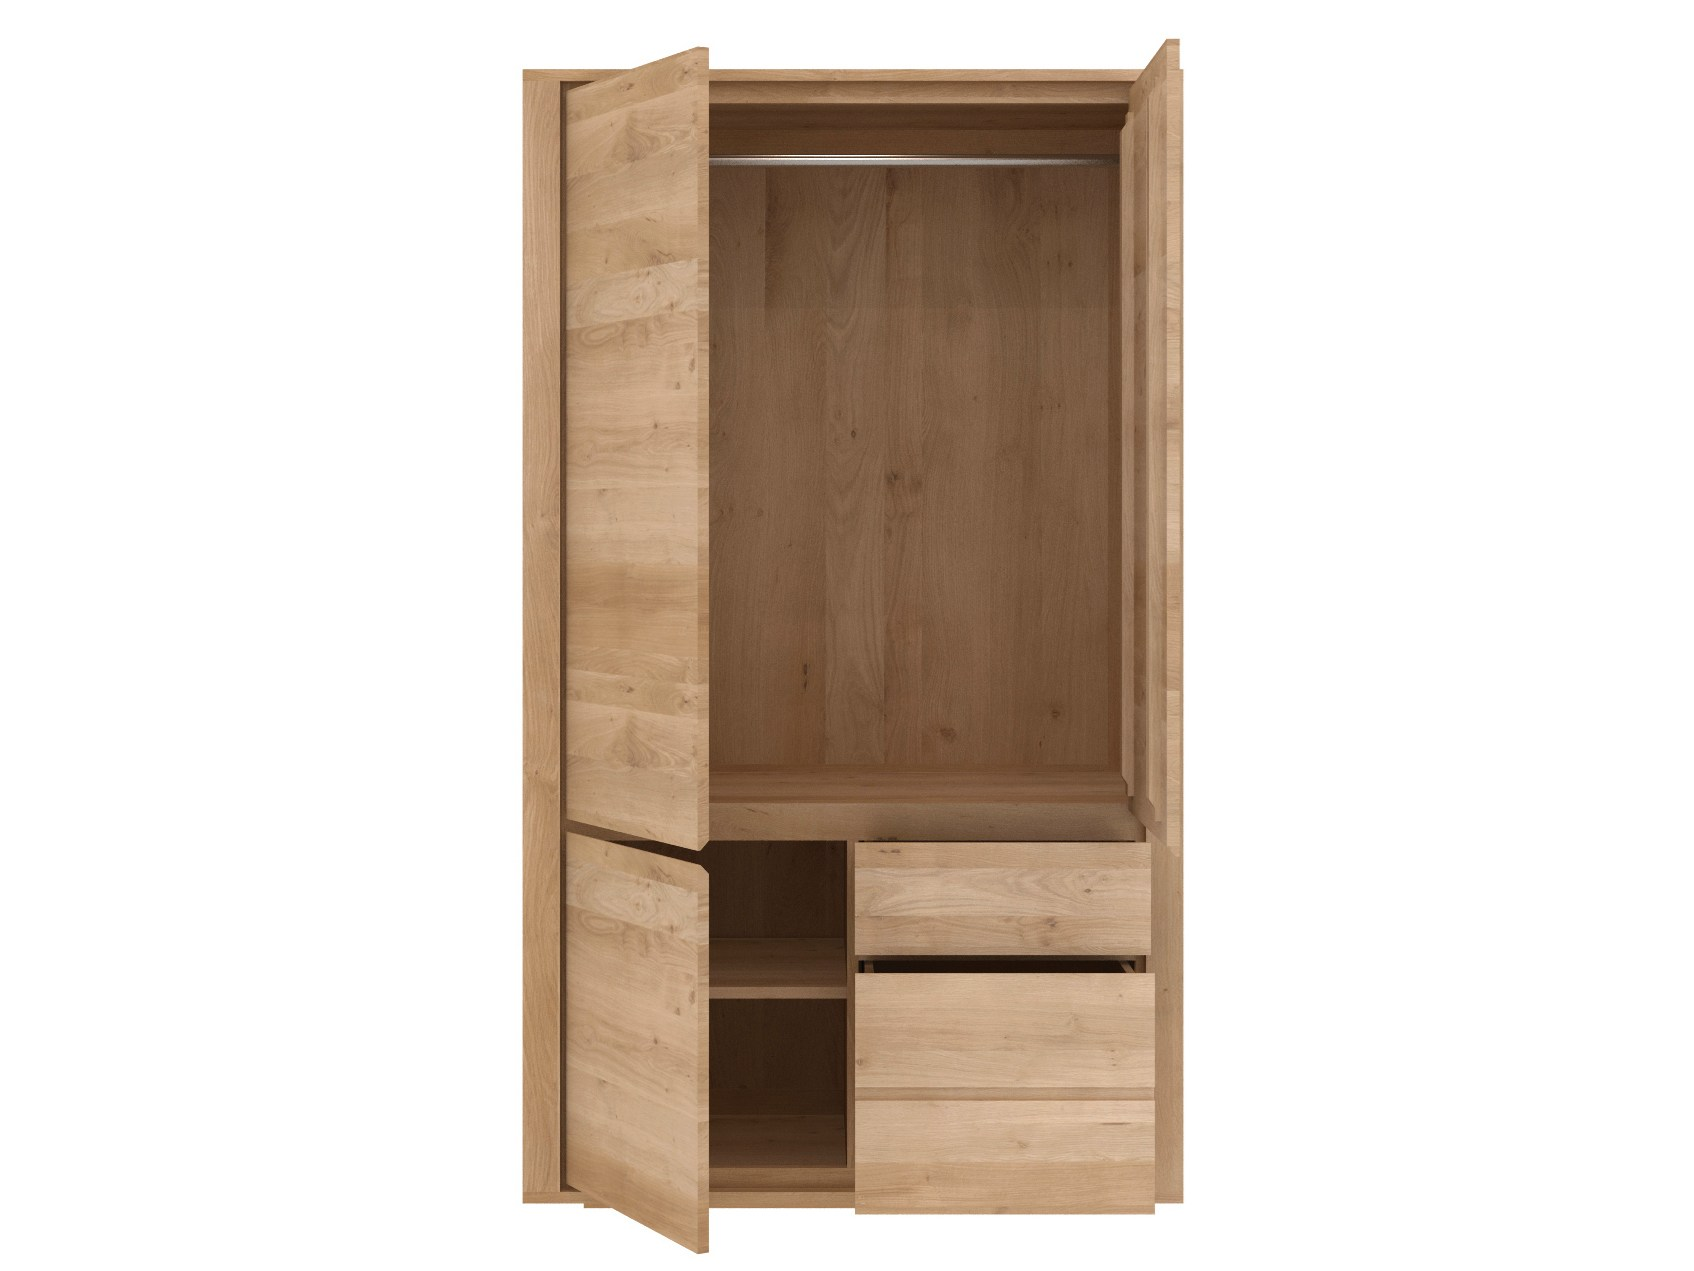 oak shadow armoire by ethnicraft. Black Bedroom Furniture Sets. Home Design Ideas